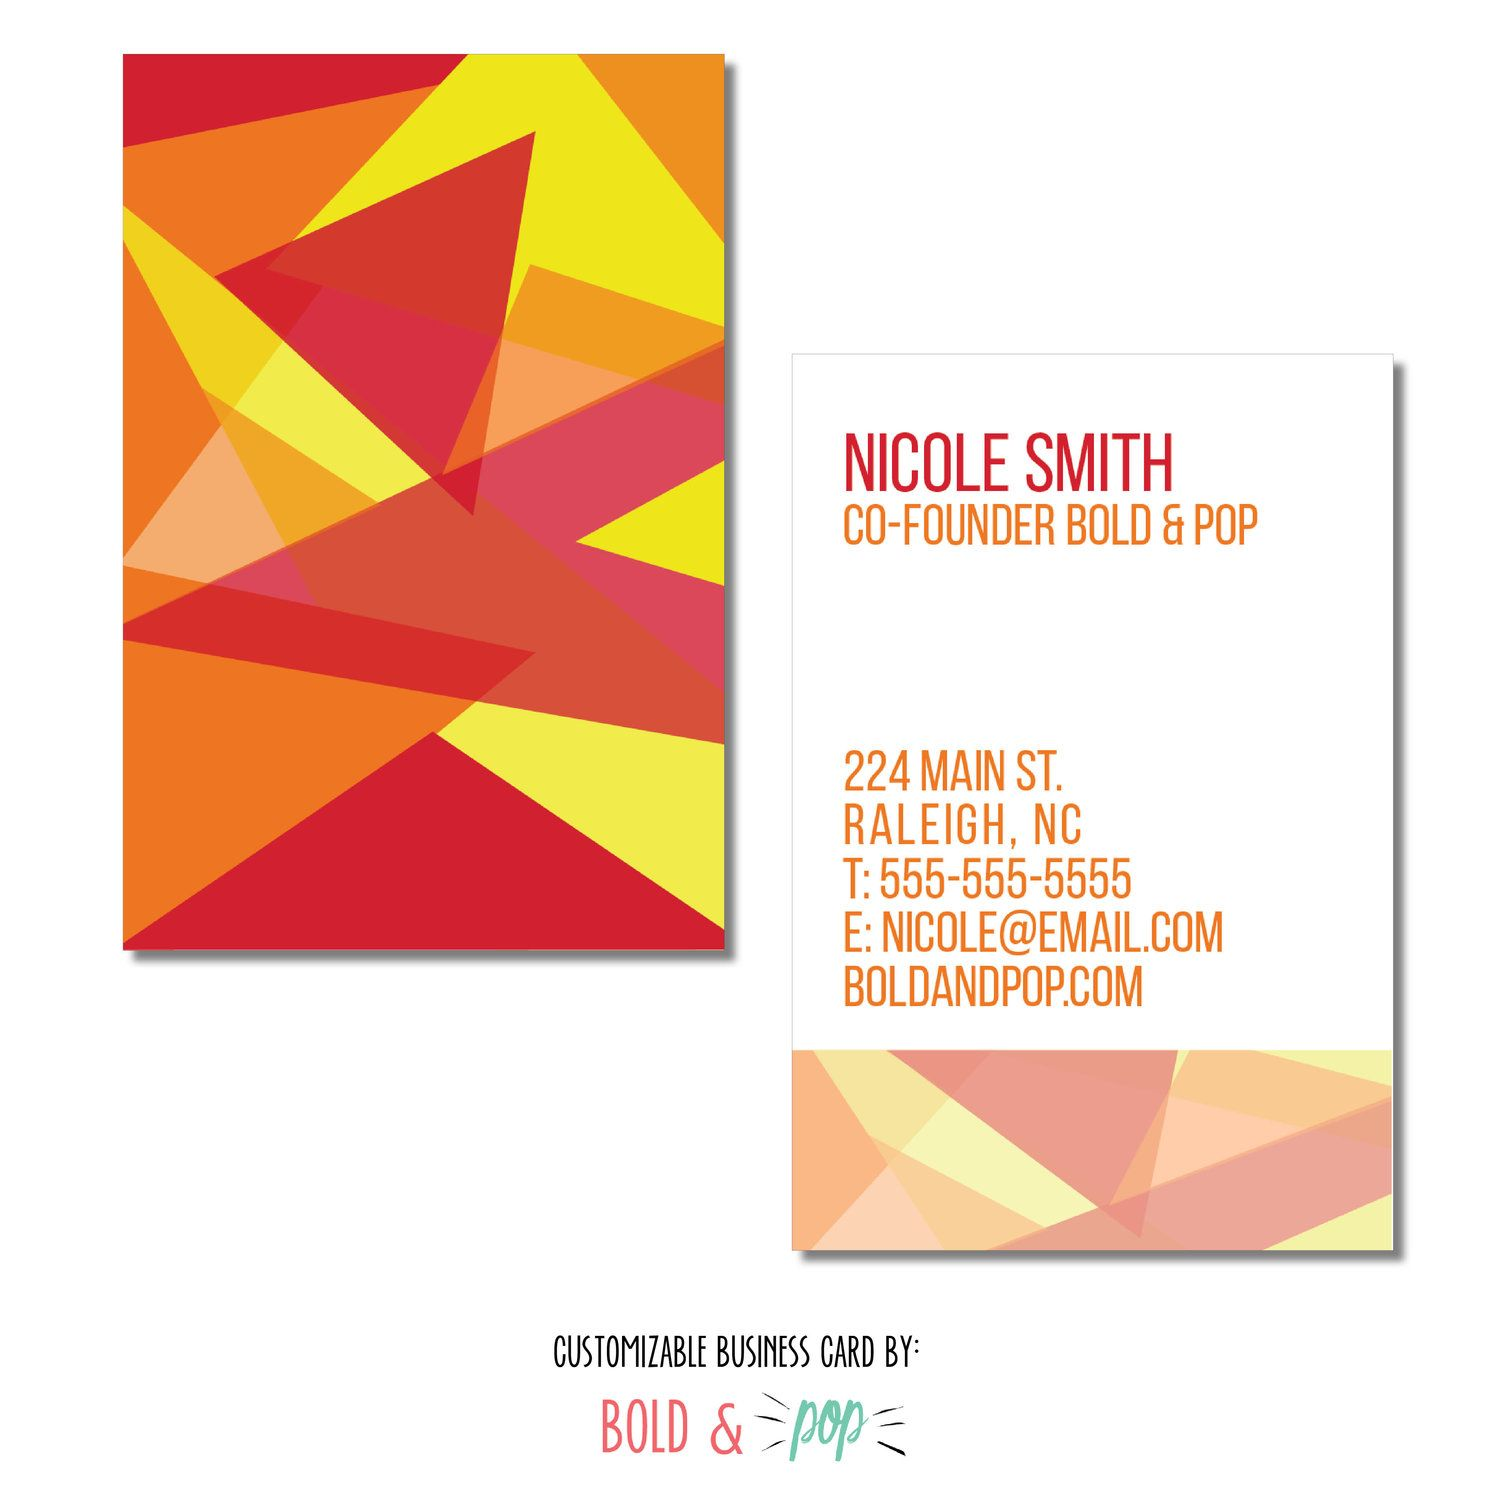 Bold Pop Thepopshop Fire Mosaic Business Card Template Business Card Template Squarespace Website Design Customizable Business Cards